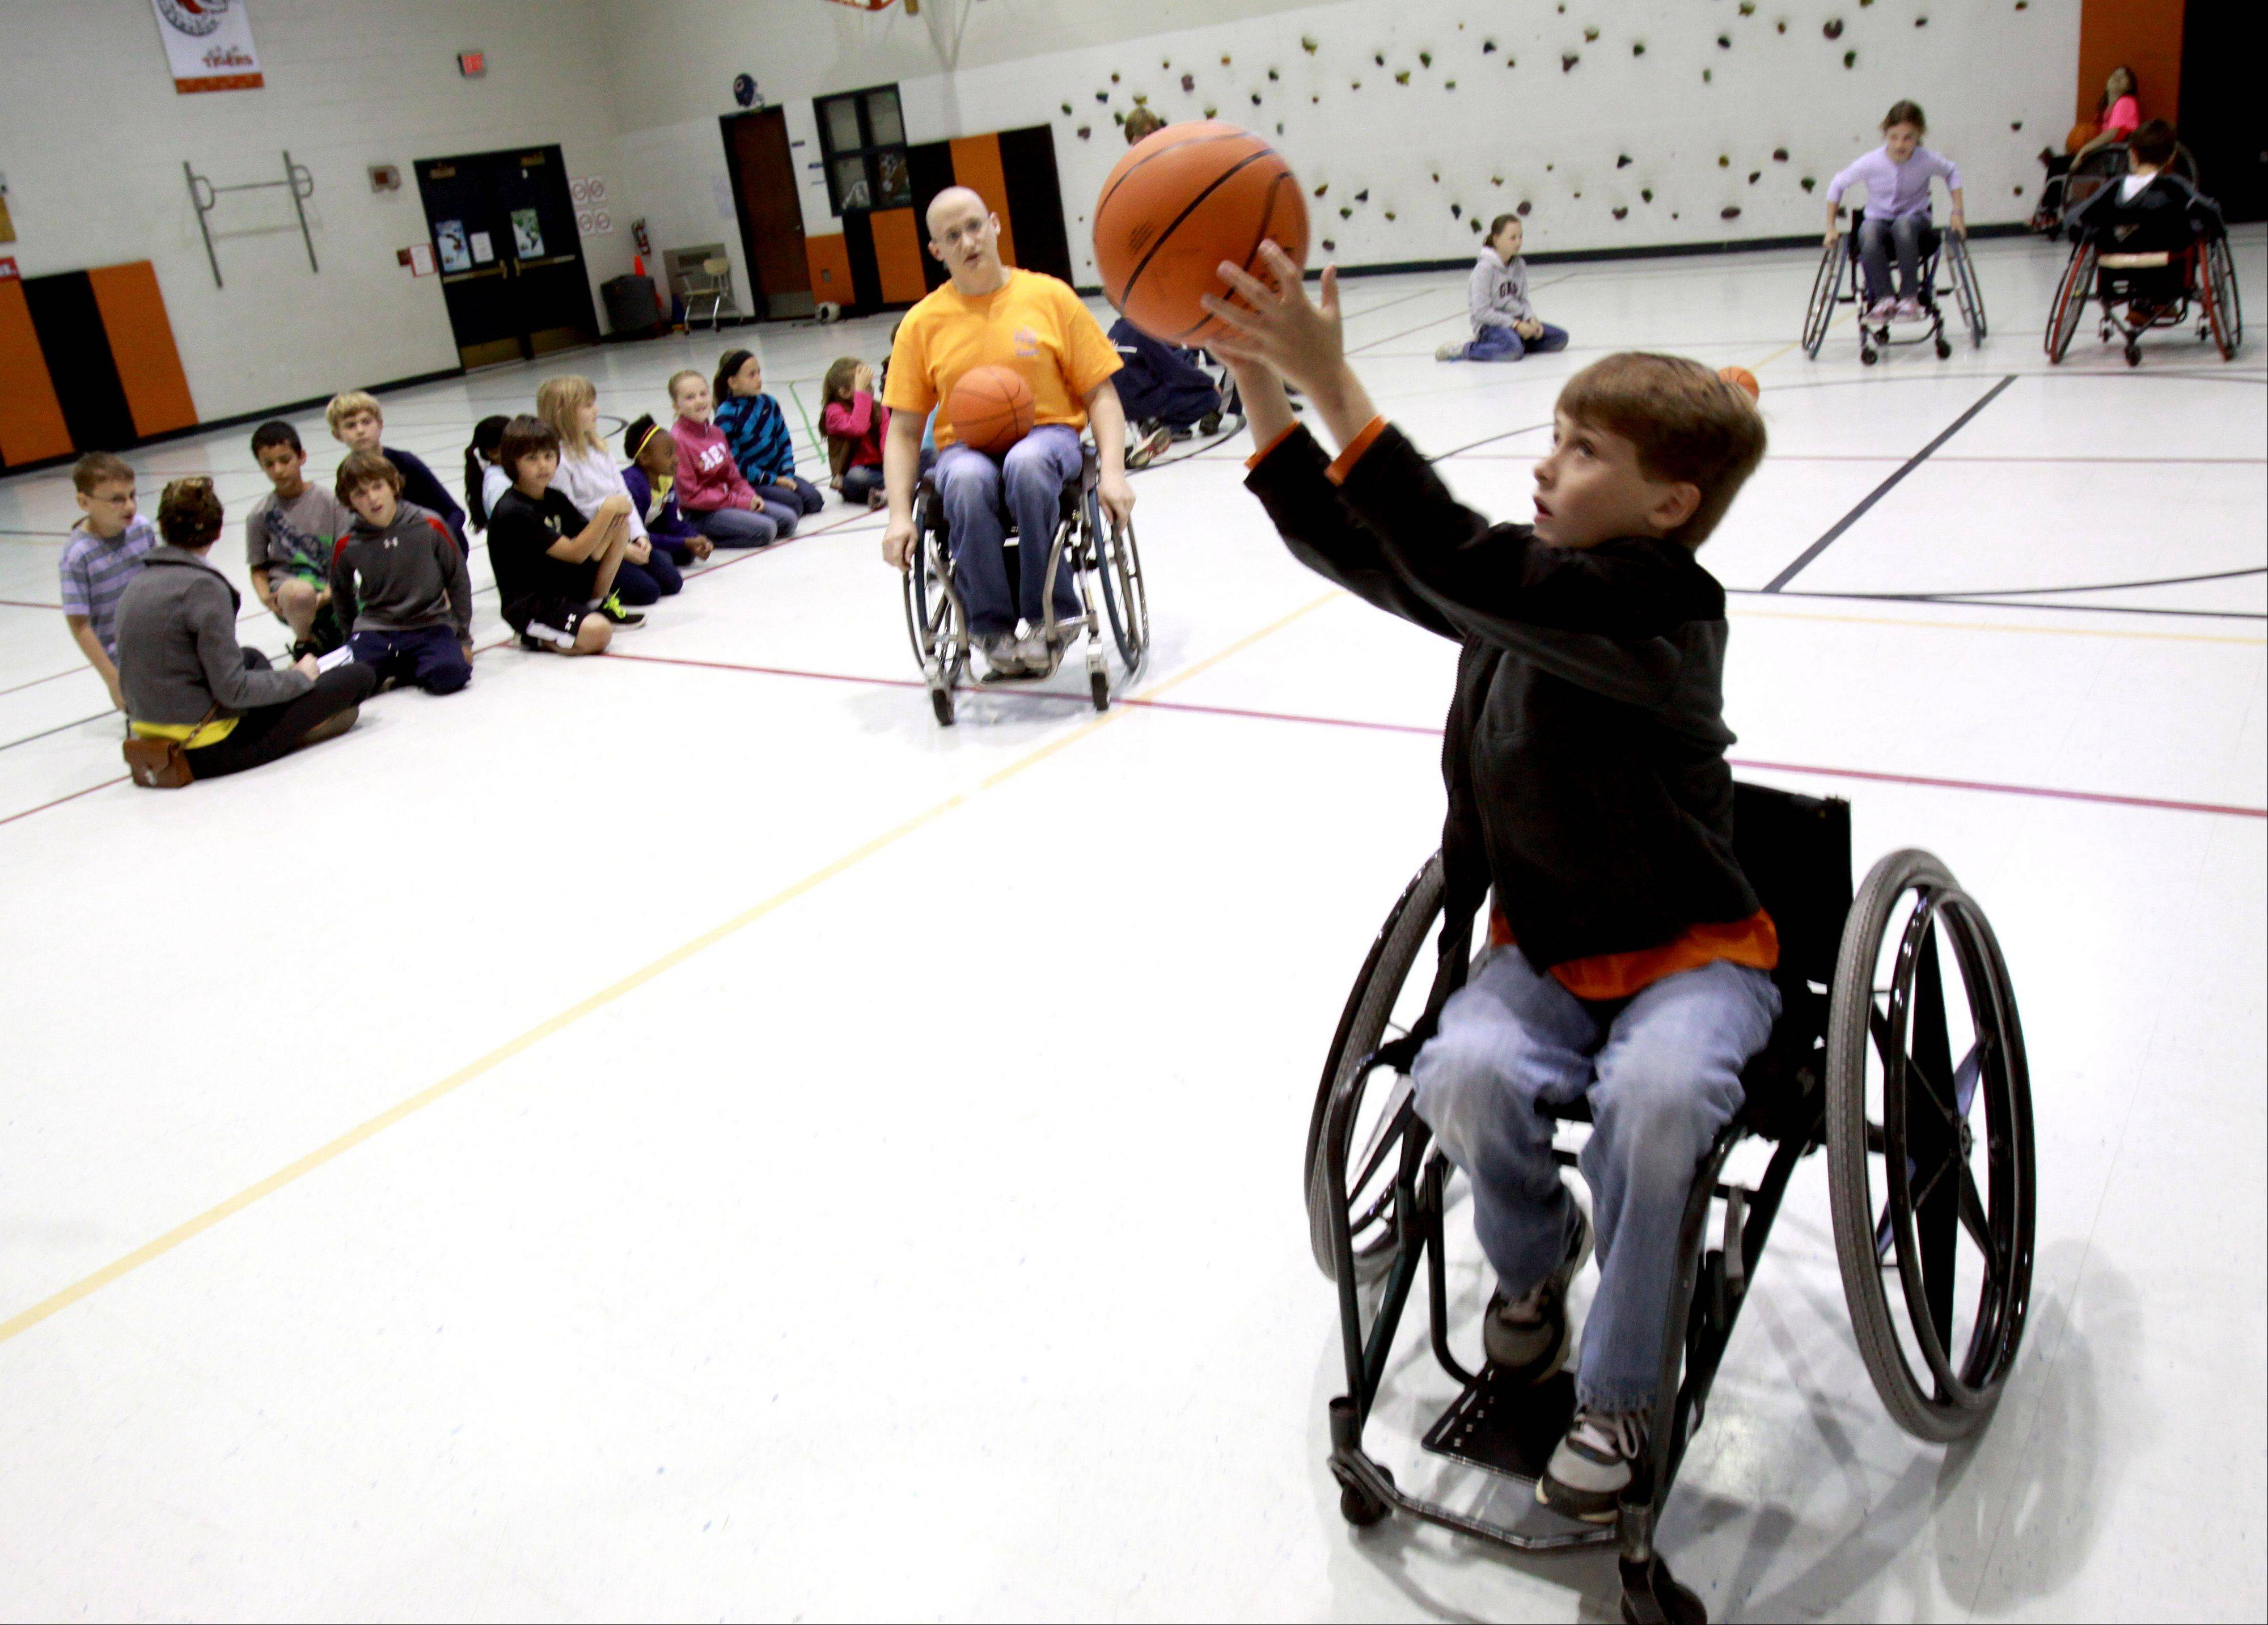 The Western DuPage Special Recreation Association's Disability Awareness Program visits Wiesbrook School in Wheaton, where third-grader Matt Dale tries out wheelchair basketball coached by Kevin Hosea, left, adapted sports supervisor with WDSRA.